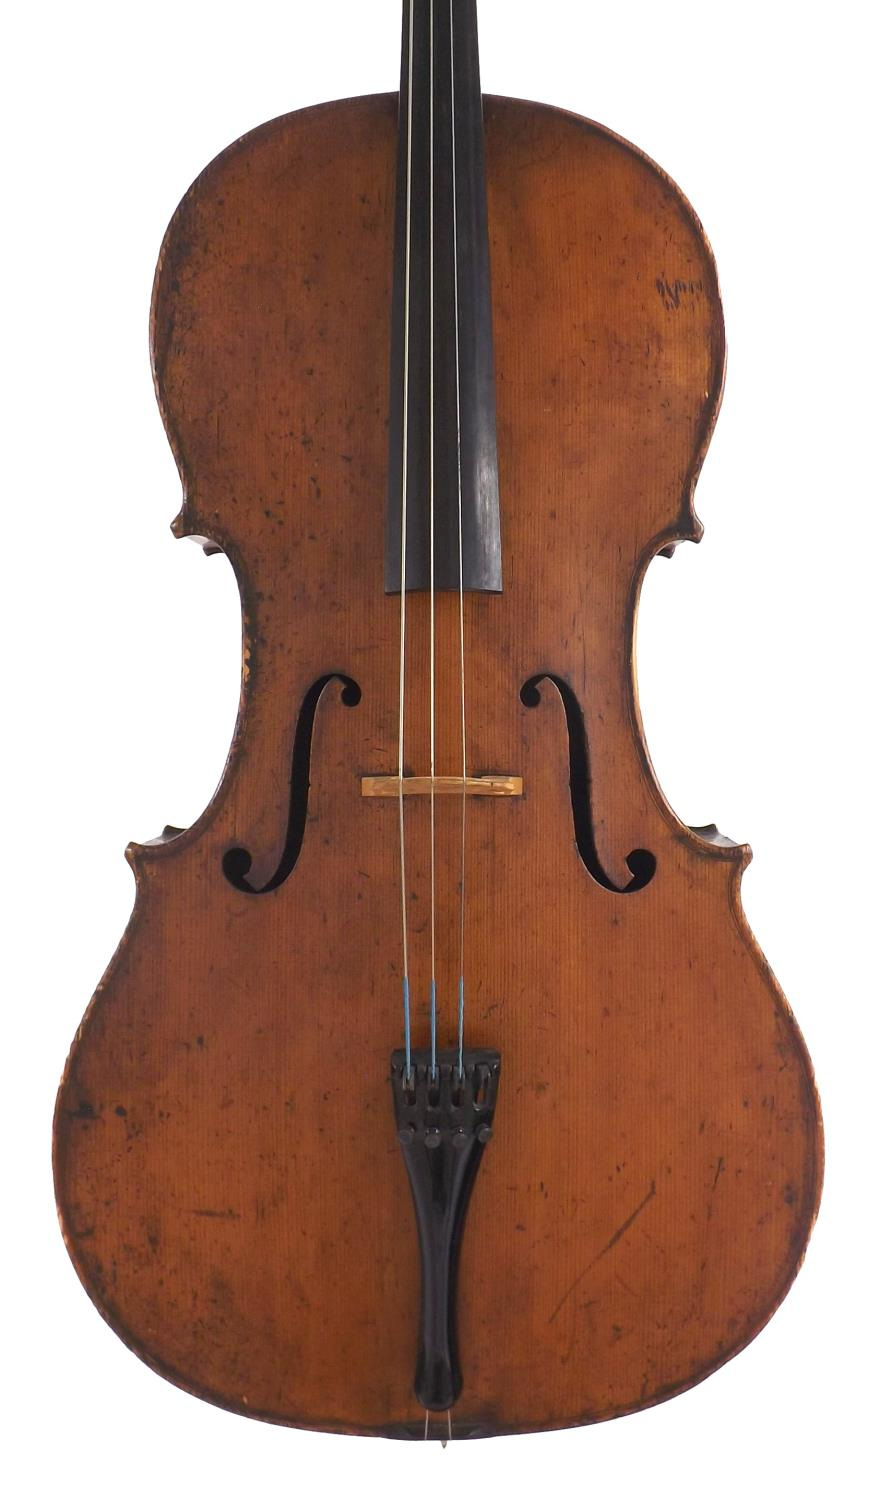 Good 19th century German violoncello labelled Louis Noebe...Hamburg and inscribed in ink on the